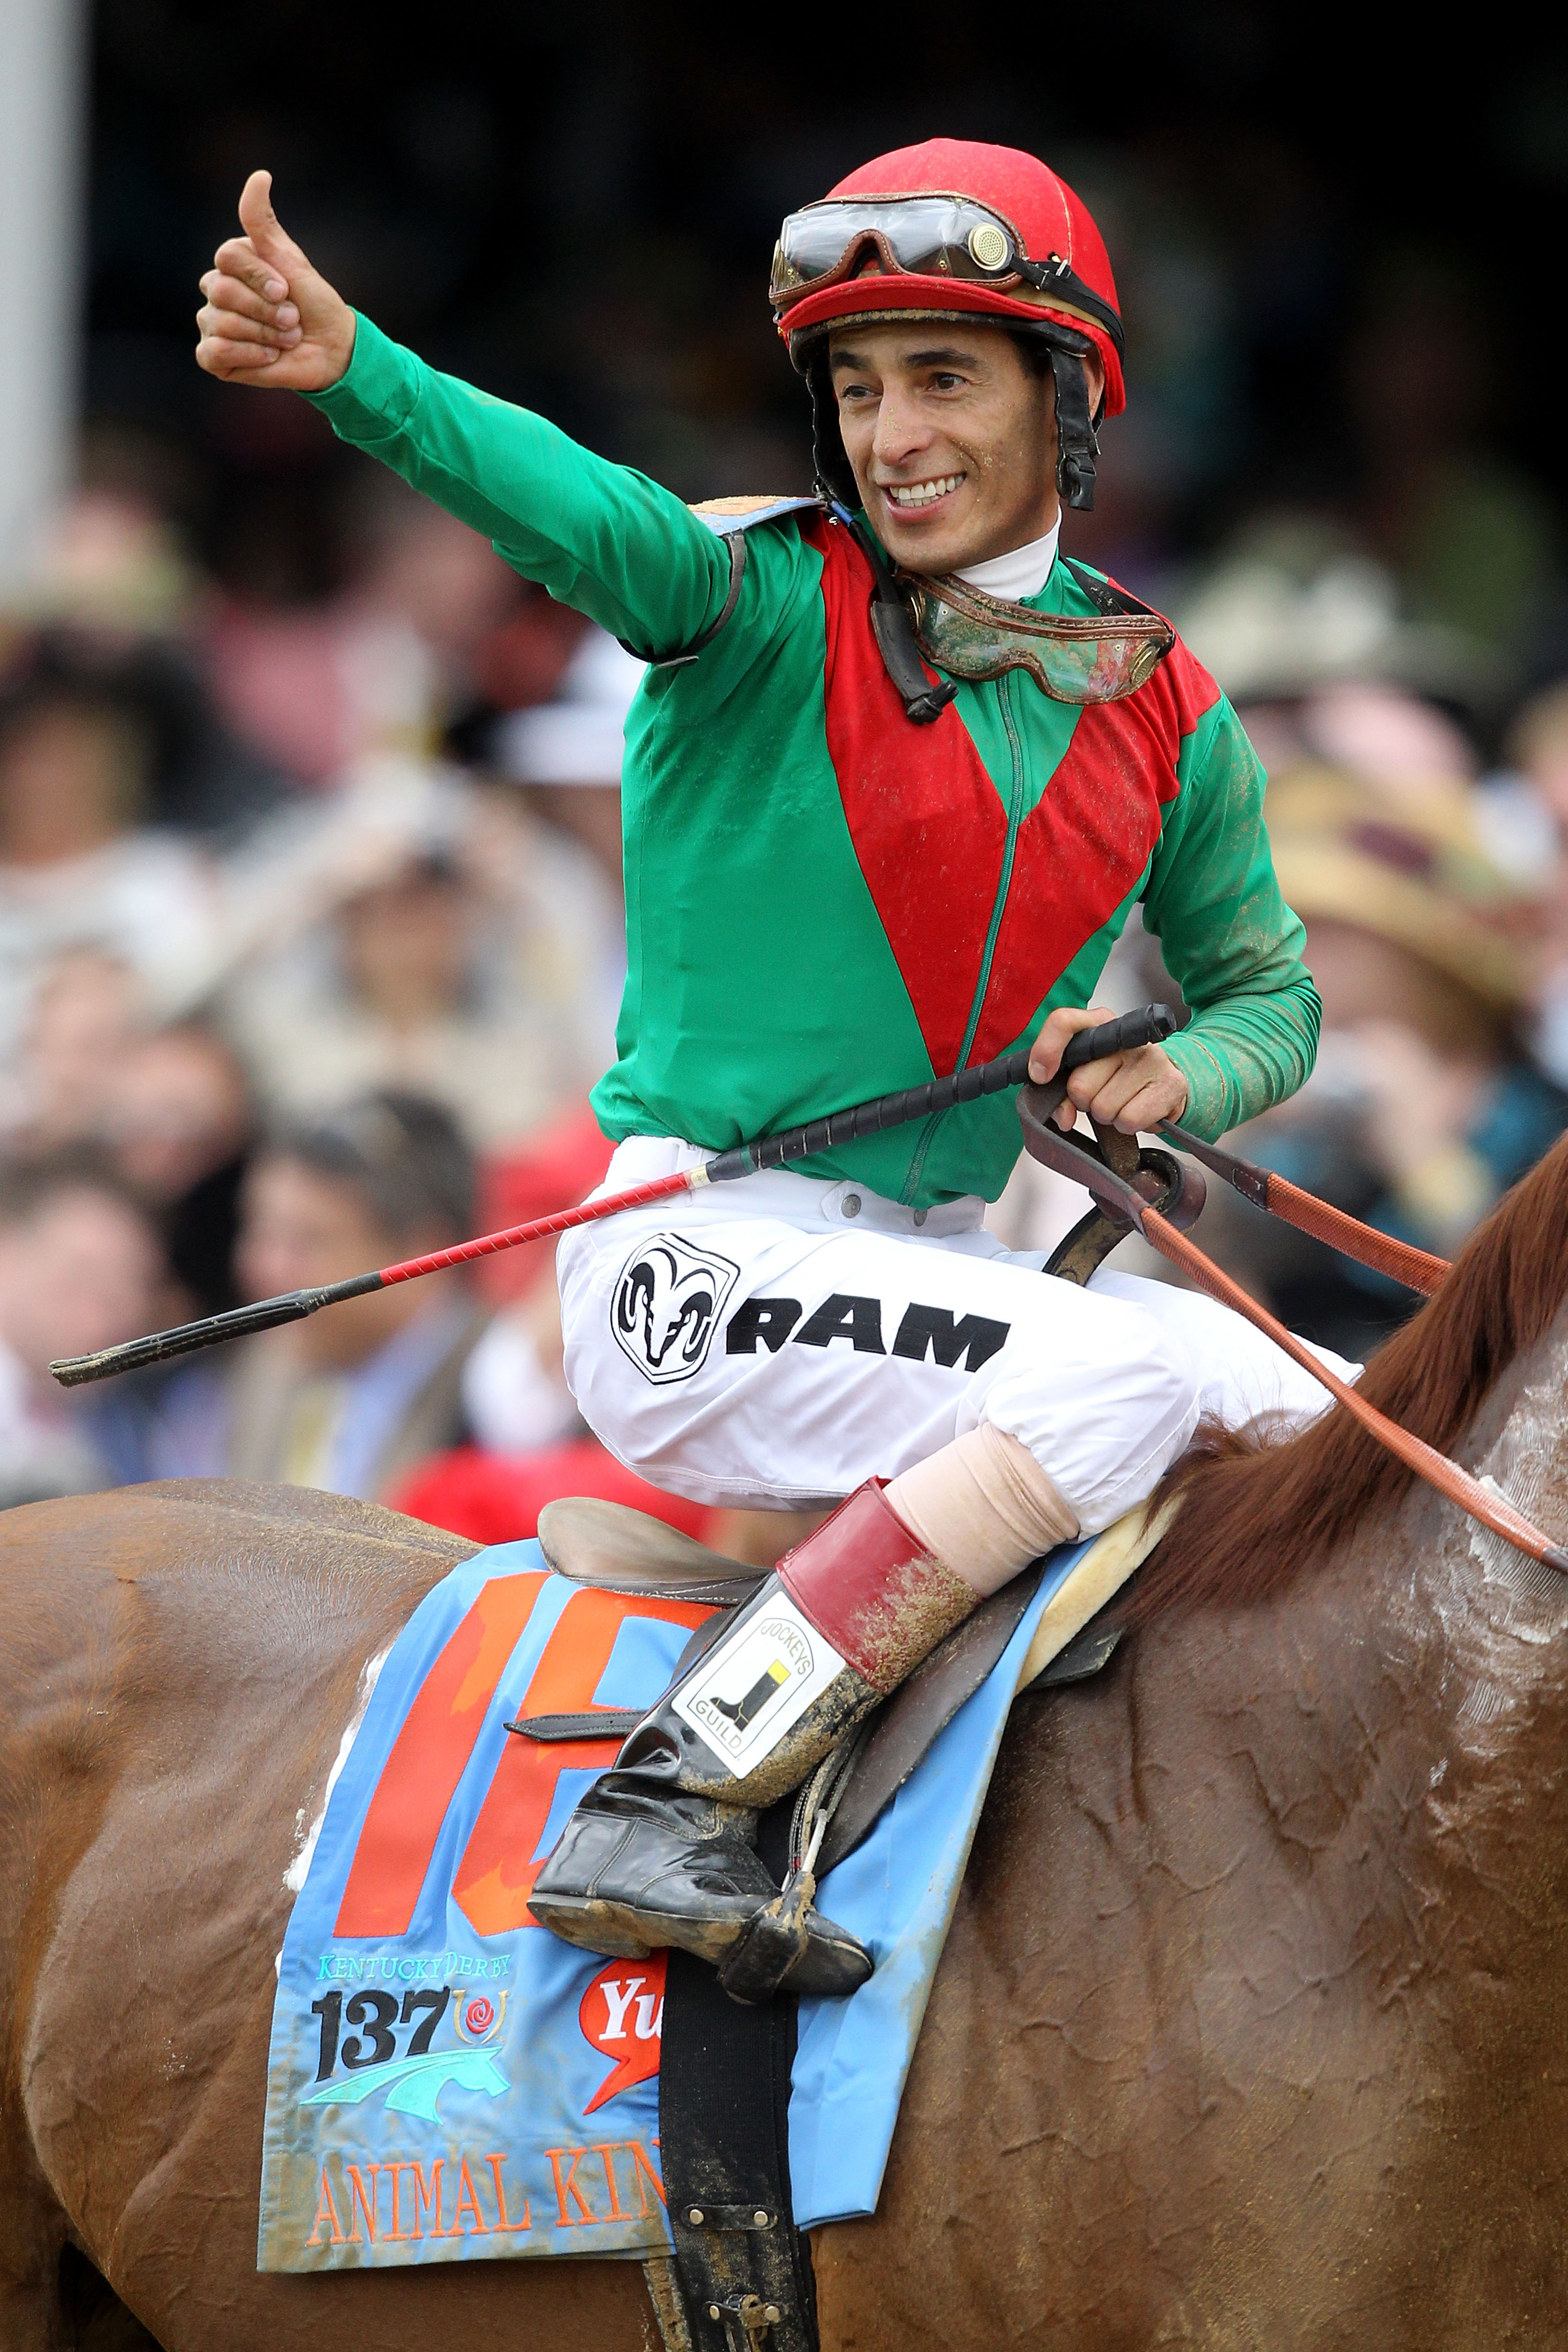 LOUISVILLE, KY - MAY 07:  Jockey John Velazquez, riding Animal Kingdom #16, celebrates winning the 137th Kentucky Derby at Churchill Downs on May 7, 2011 in Louisville, Kentucky.  (Photo by Matthew Stockman/Getty Images)